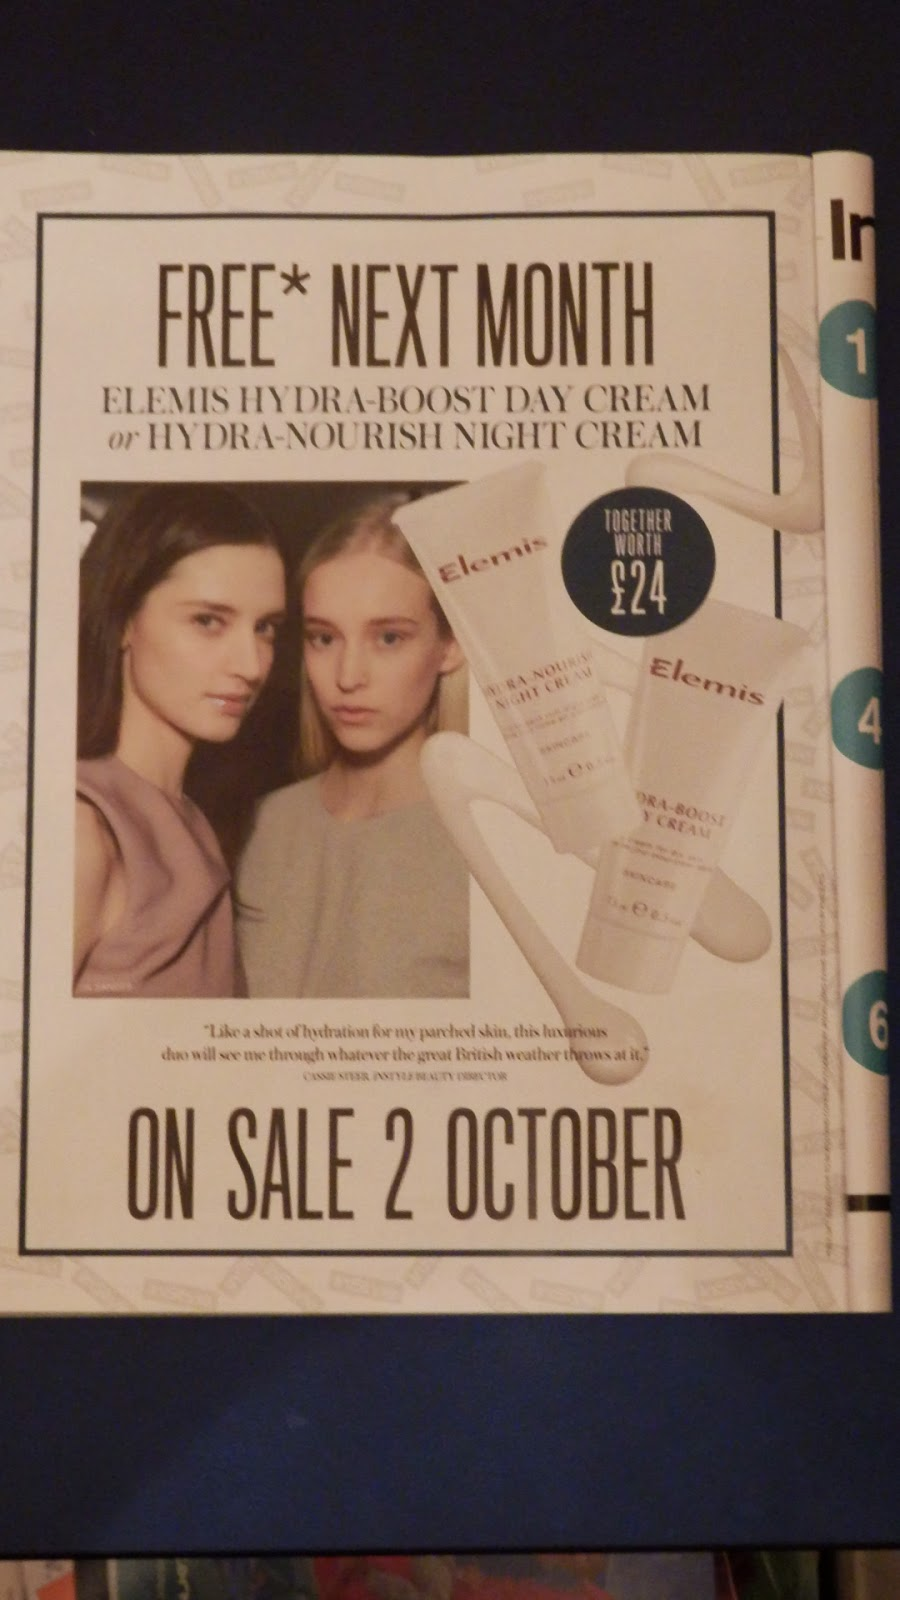 InStyle Magazine November 2014 Edition Freebies Elemis Hydra-Boost Day Cream or Hydra-Nourish Night Cream